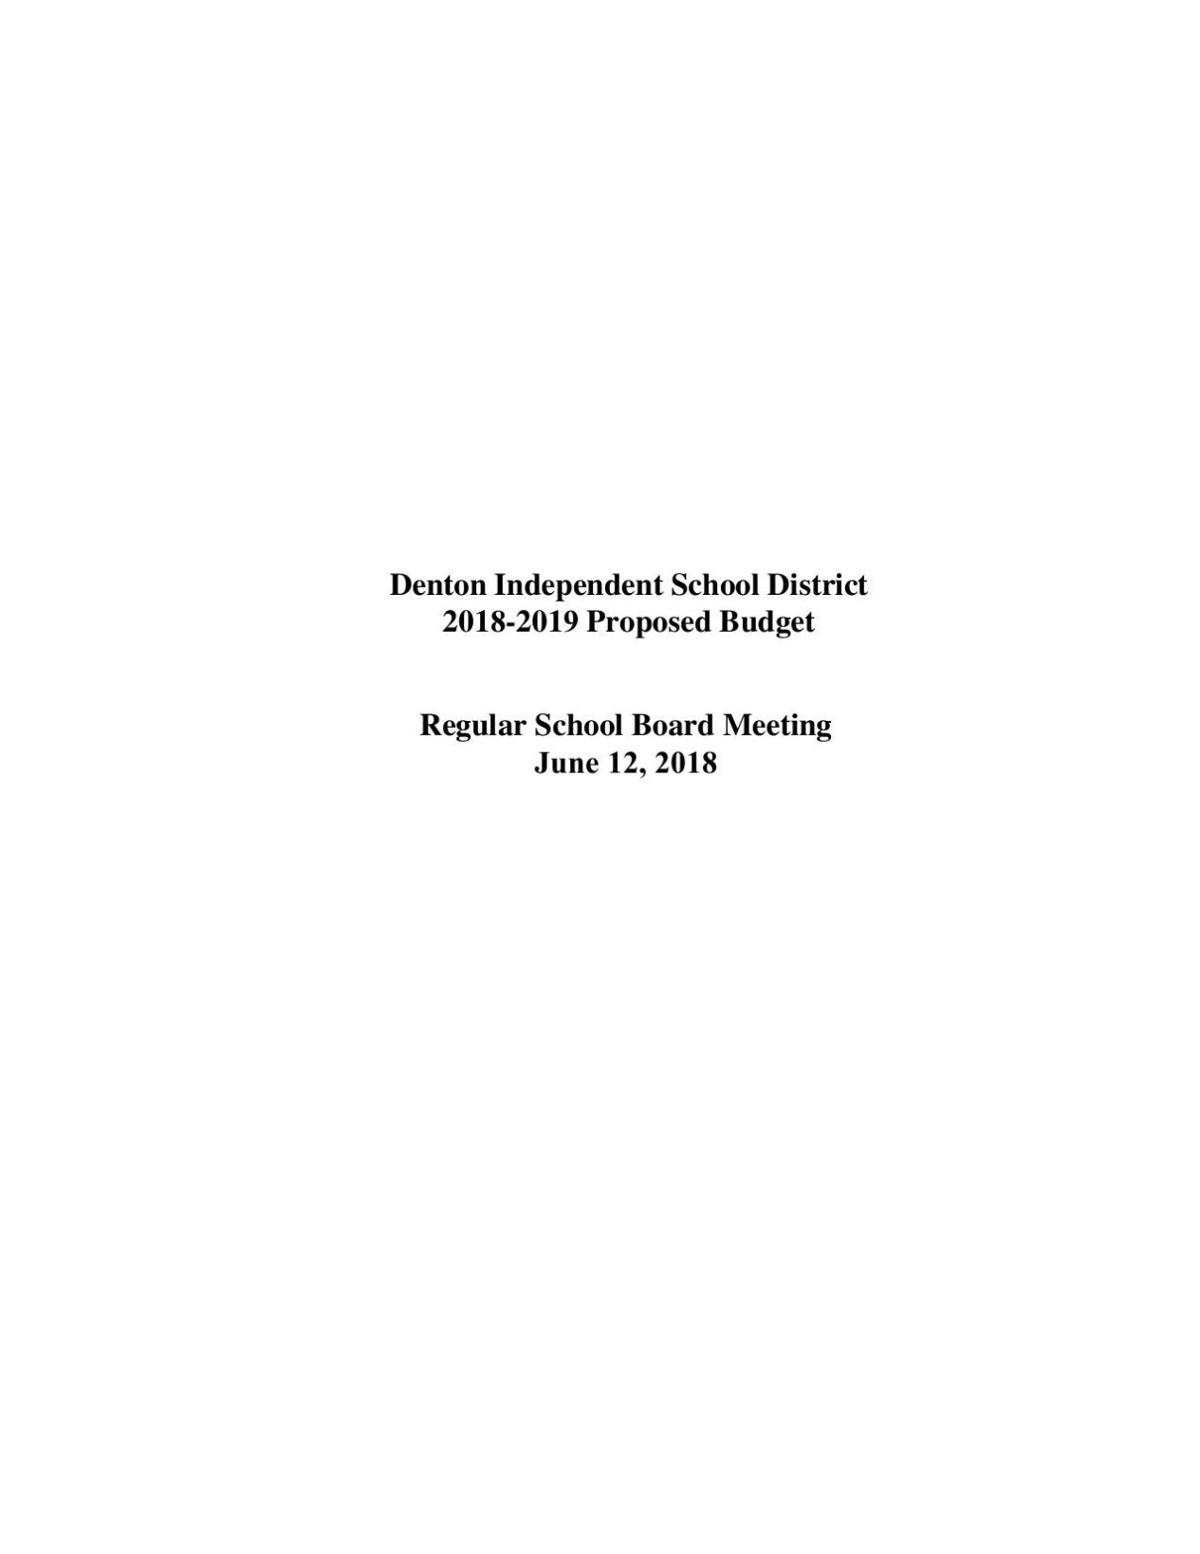 Denton ISD 2018-2019 Proposed Budget